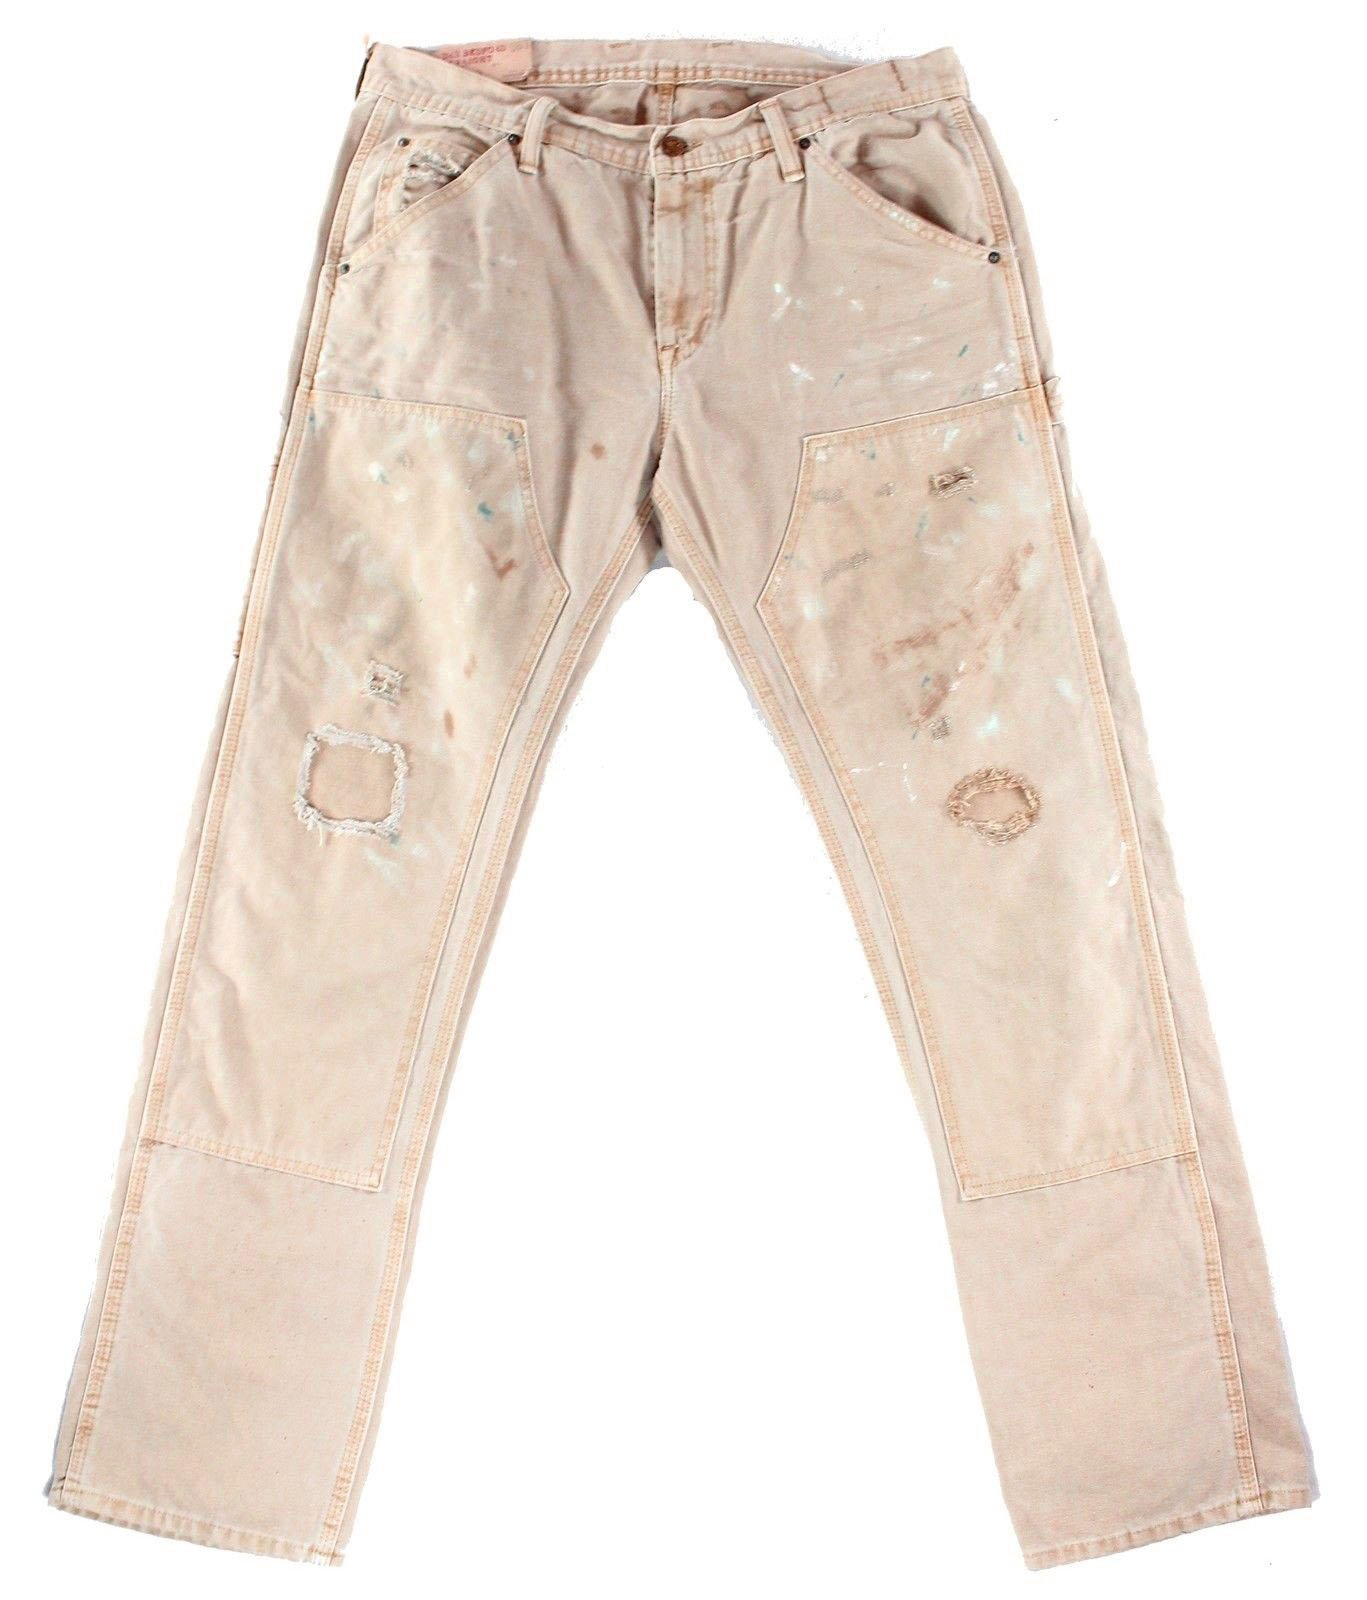 RALPH LAUREN Denim & Supply Men's Splattered Straight Jeans (Fowler, 33W x 32L)